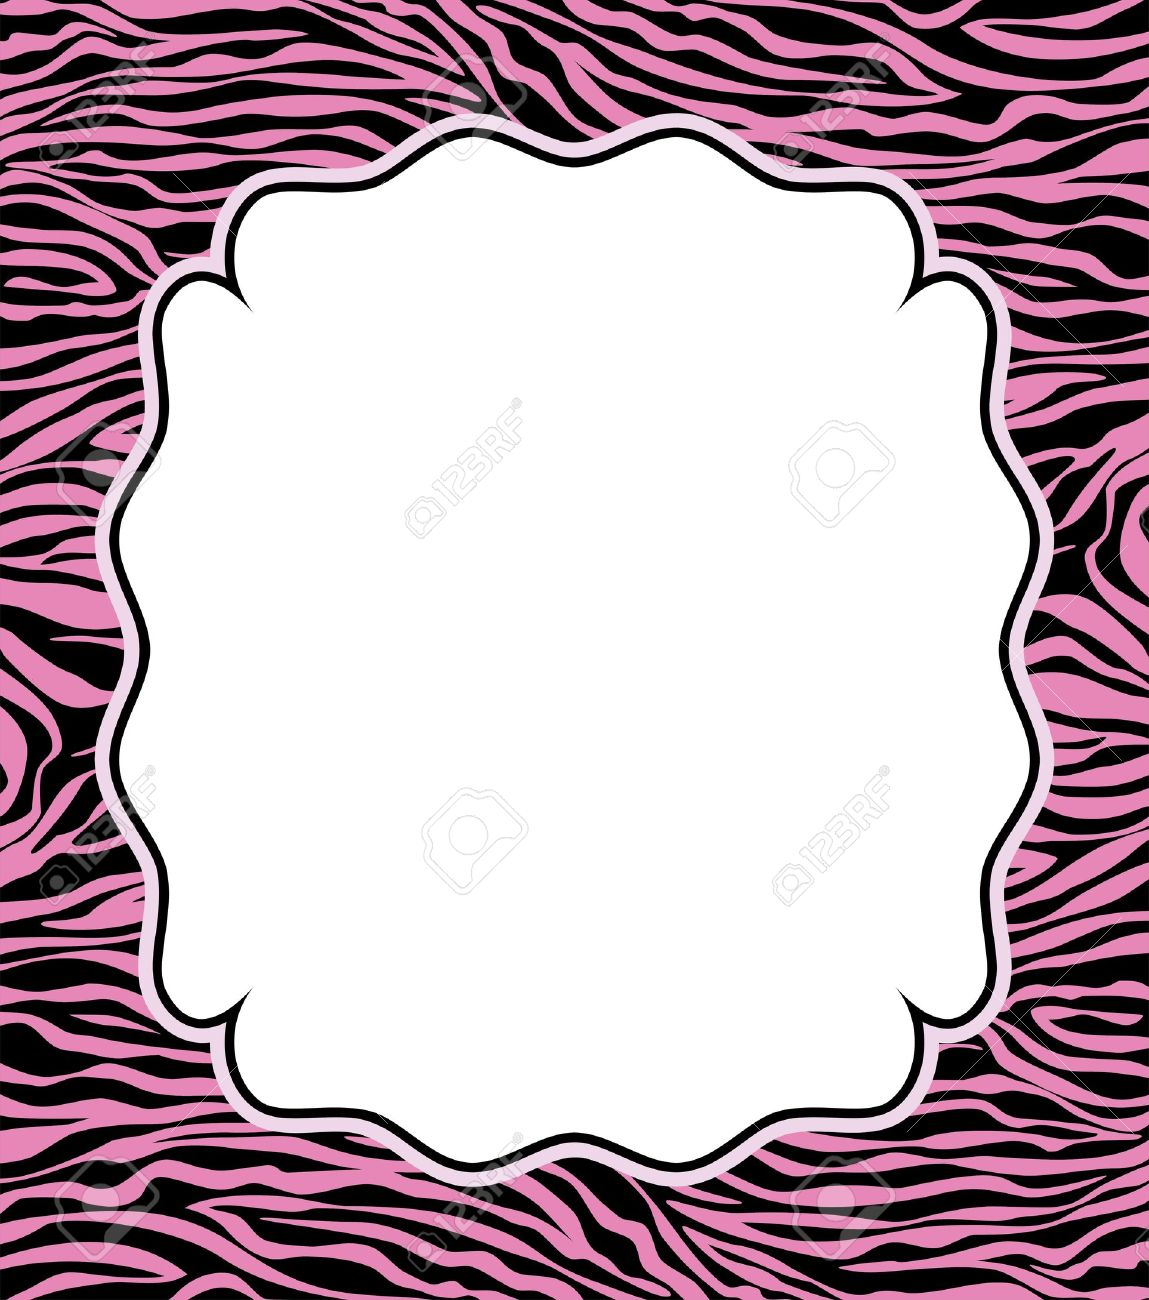 Vector Frame With Abstract Zebra Skin Texture And Copy-space Royalty ...